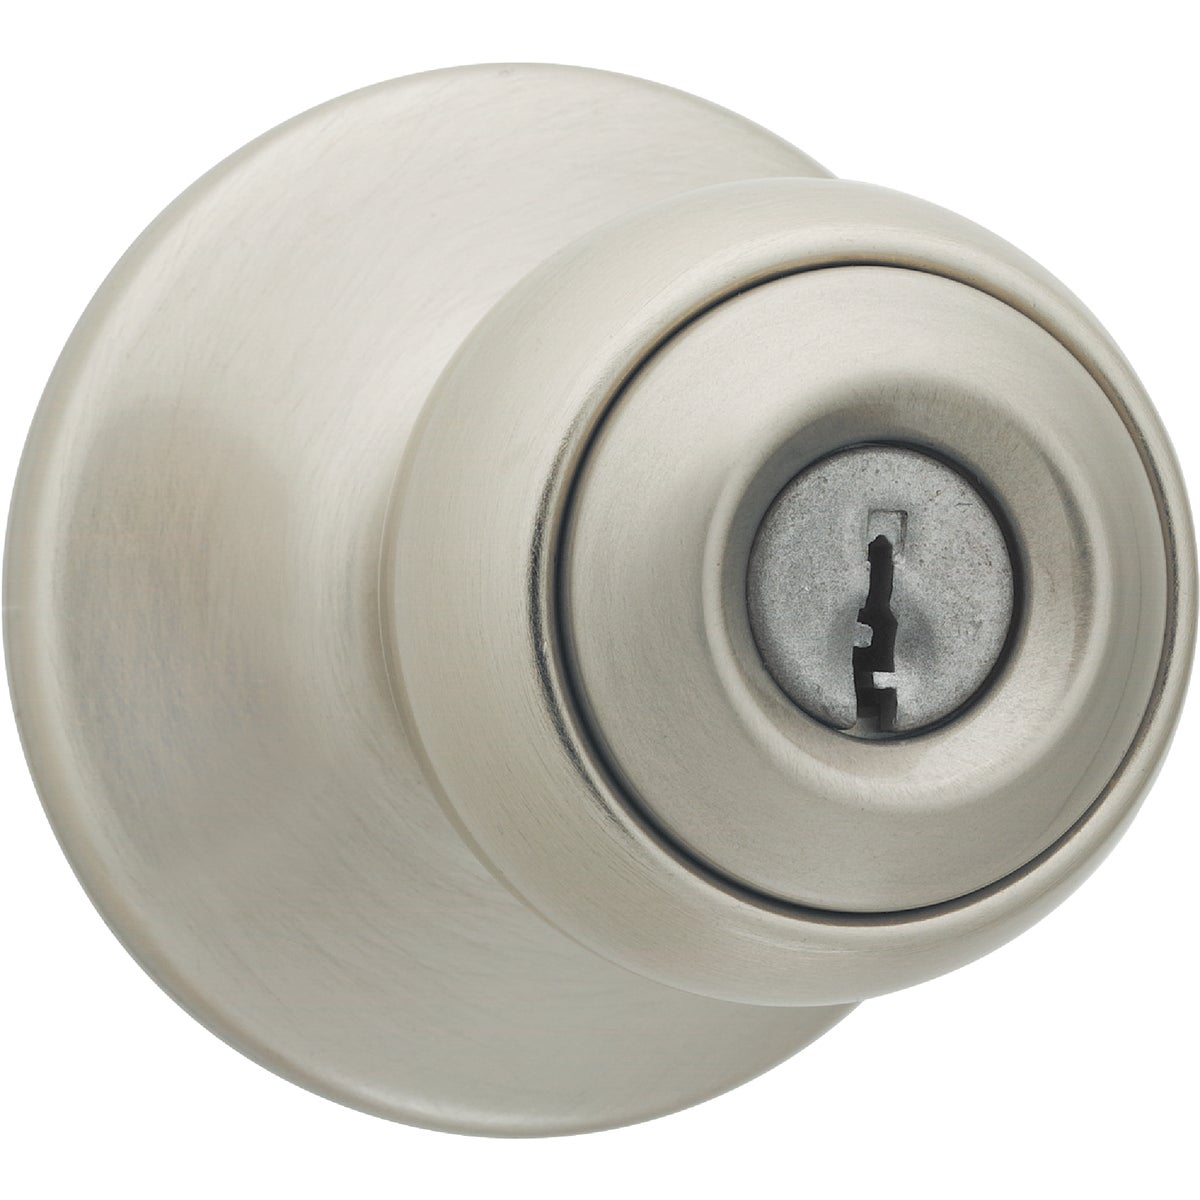 SN BX POLO ENTRY LOCK - 400P 15 6AL RCS KD by Kwikset